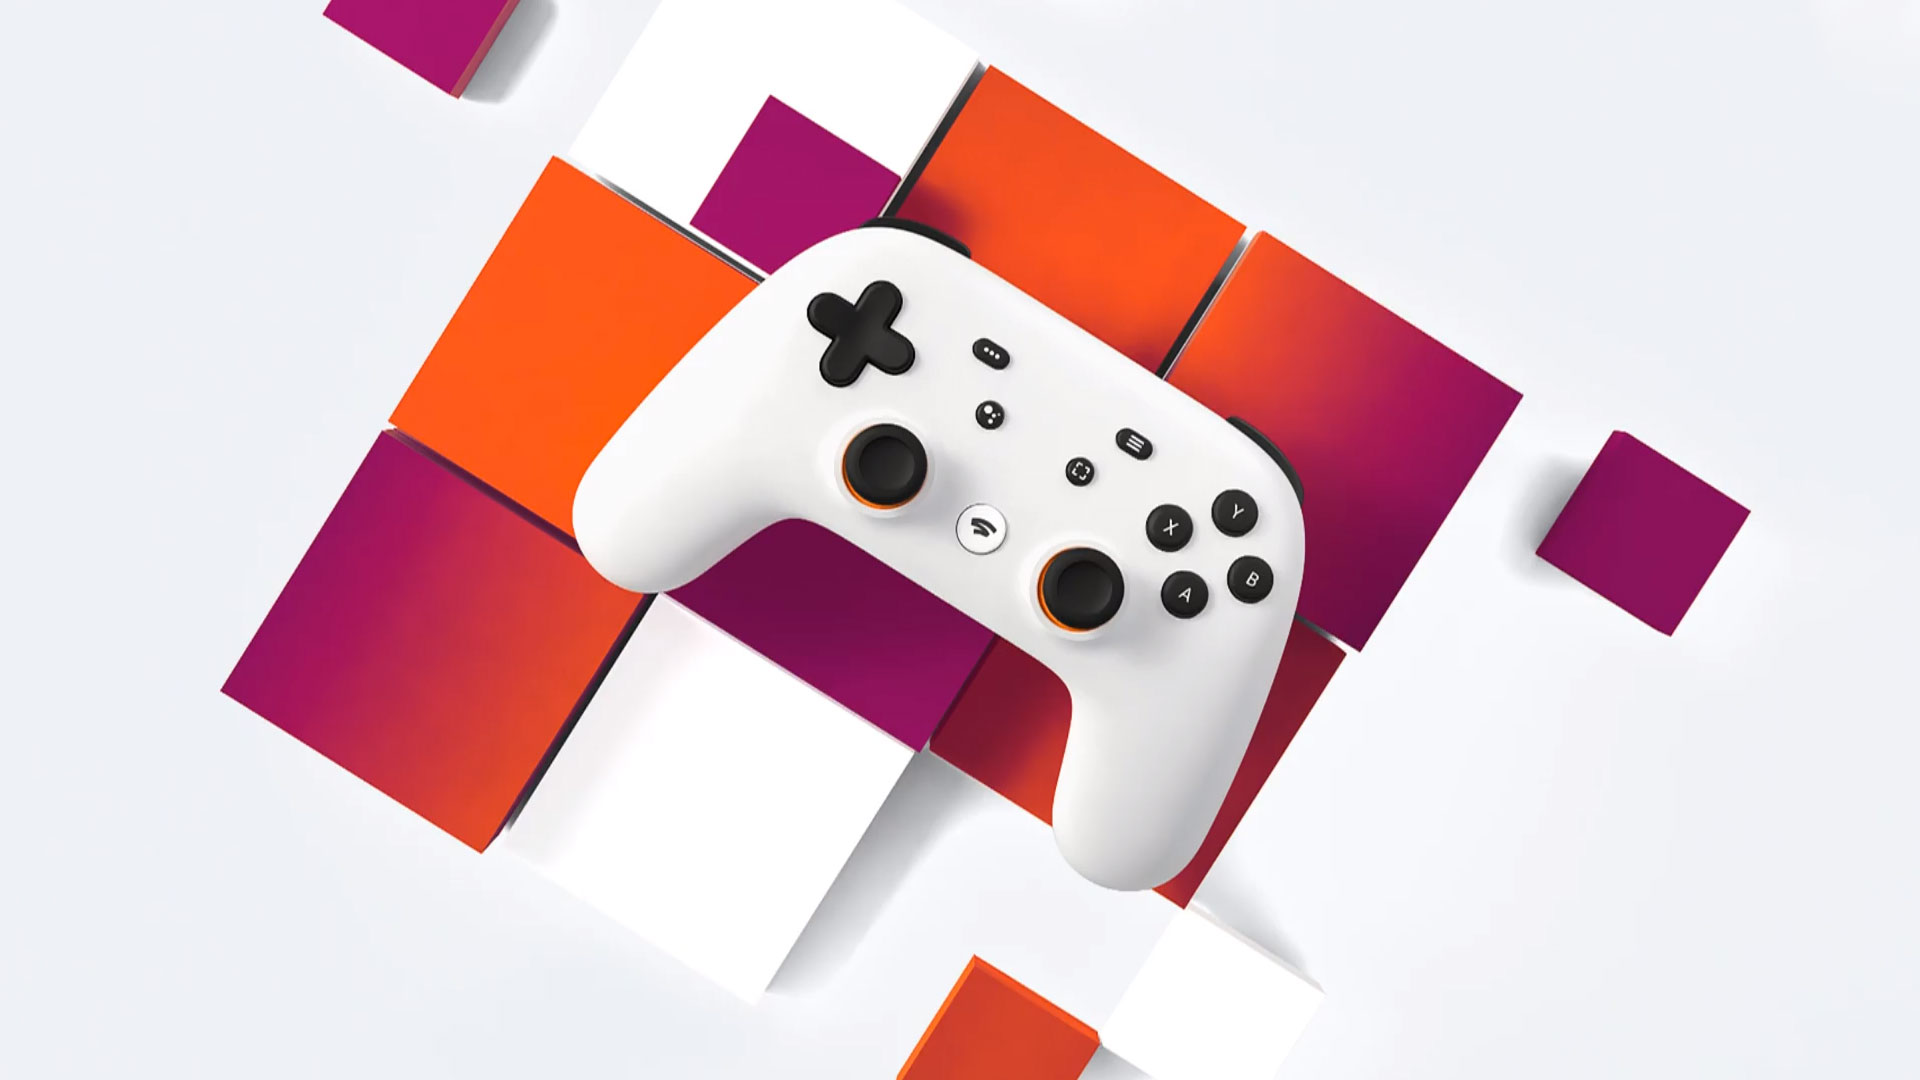 Google Stadia soon available on non-Pixel phones, Samsung Galaxy S20 tops list